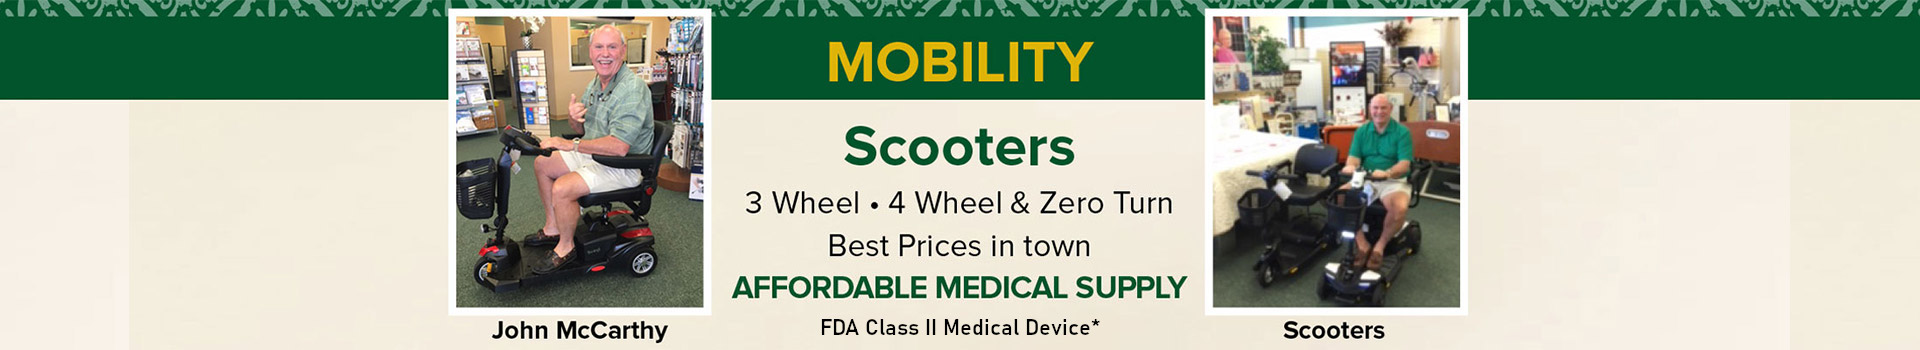 mobility-scooters-2